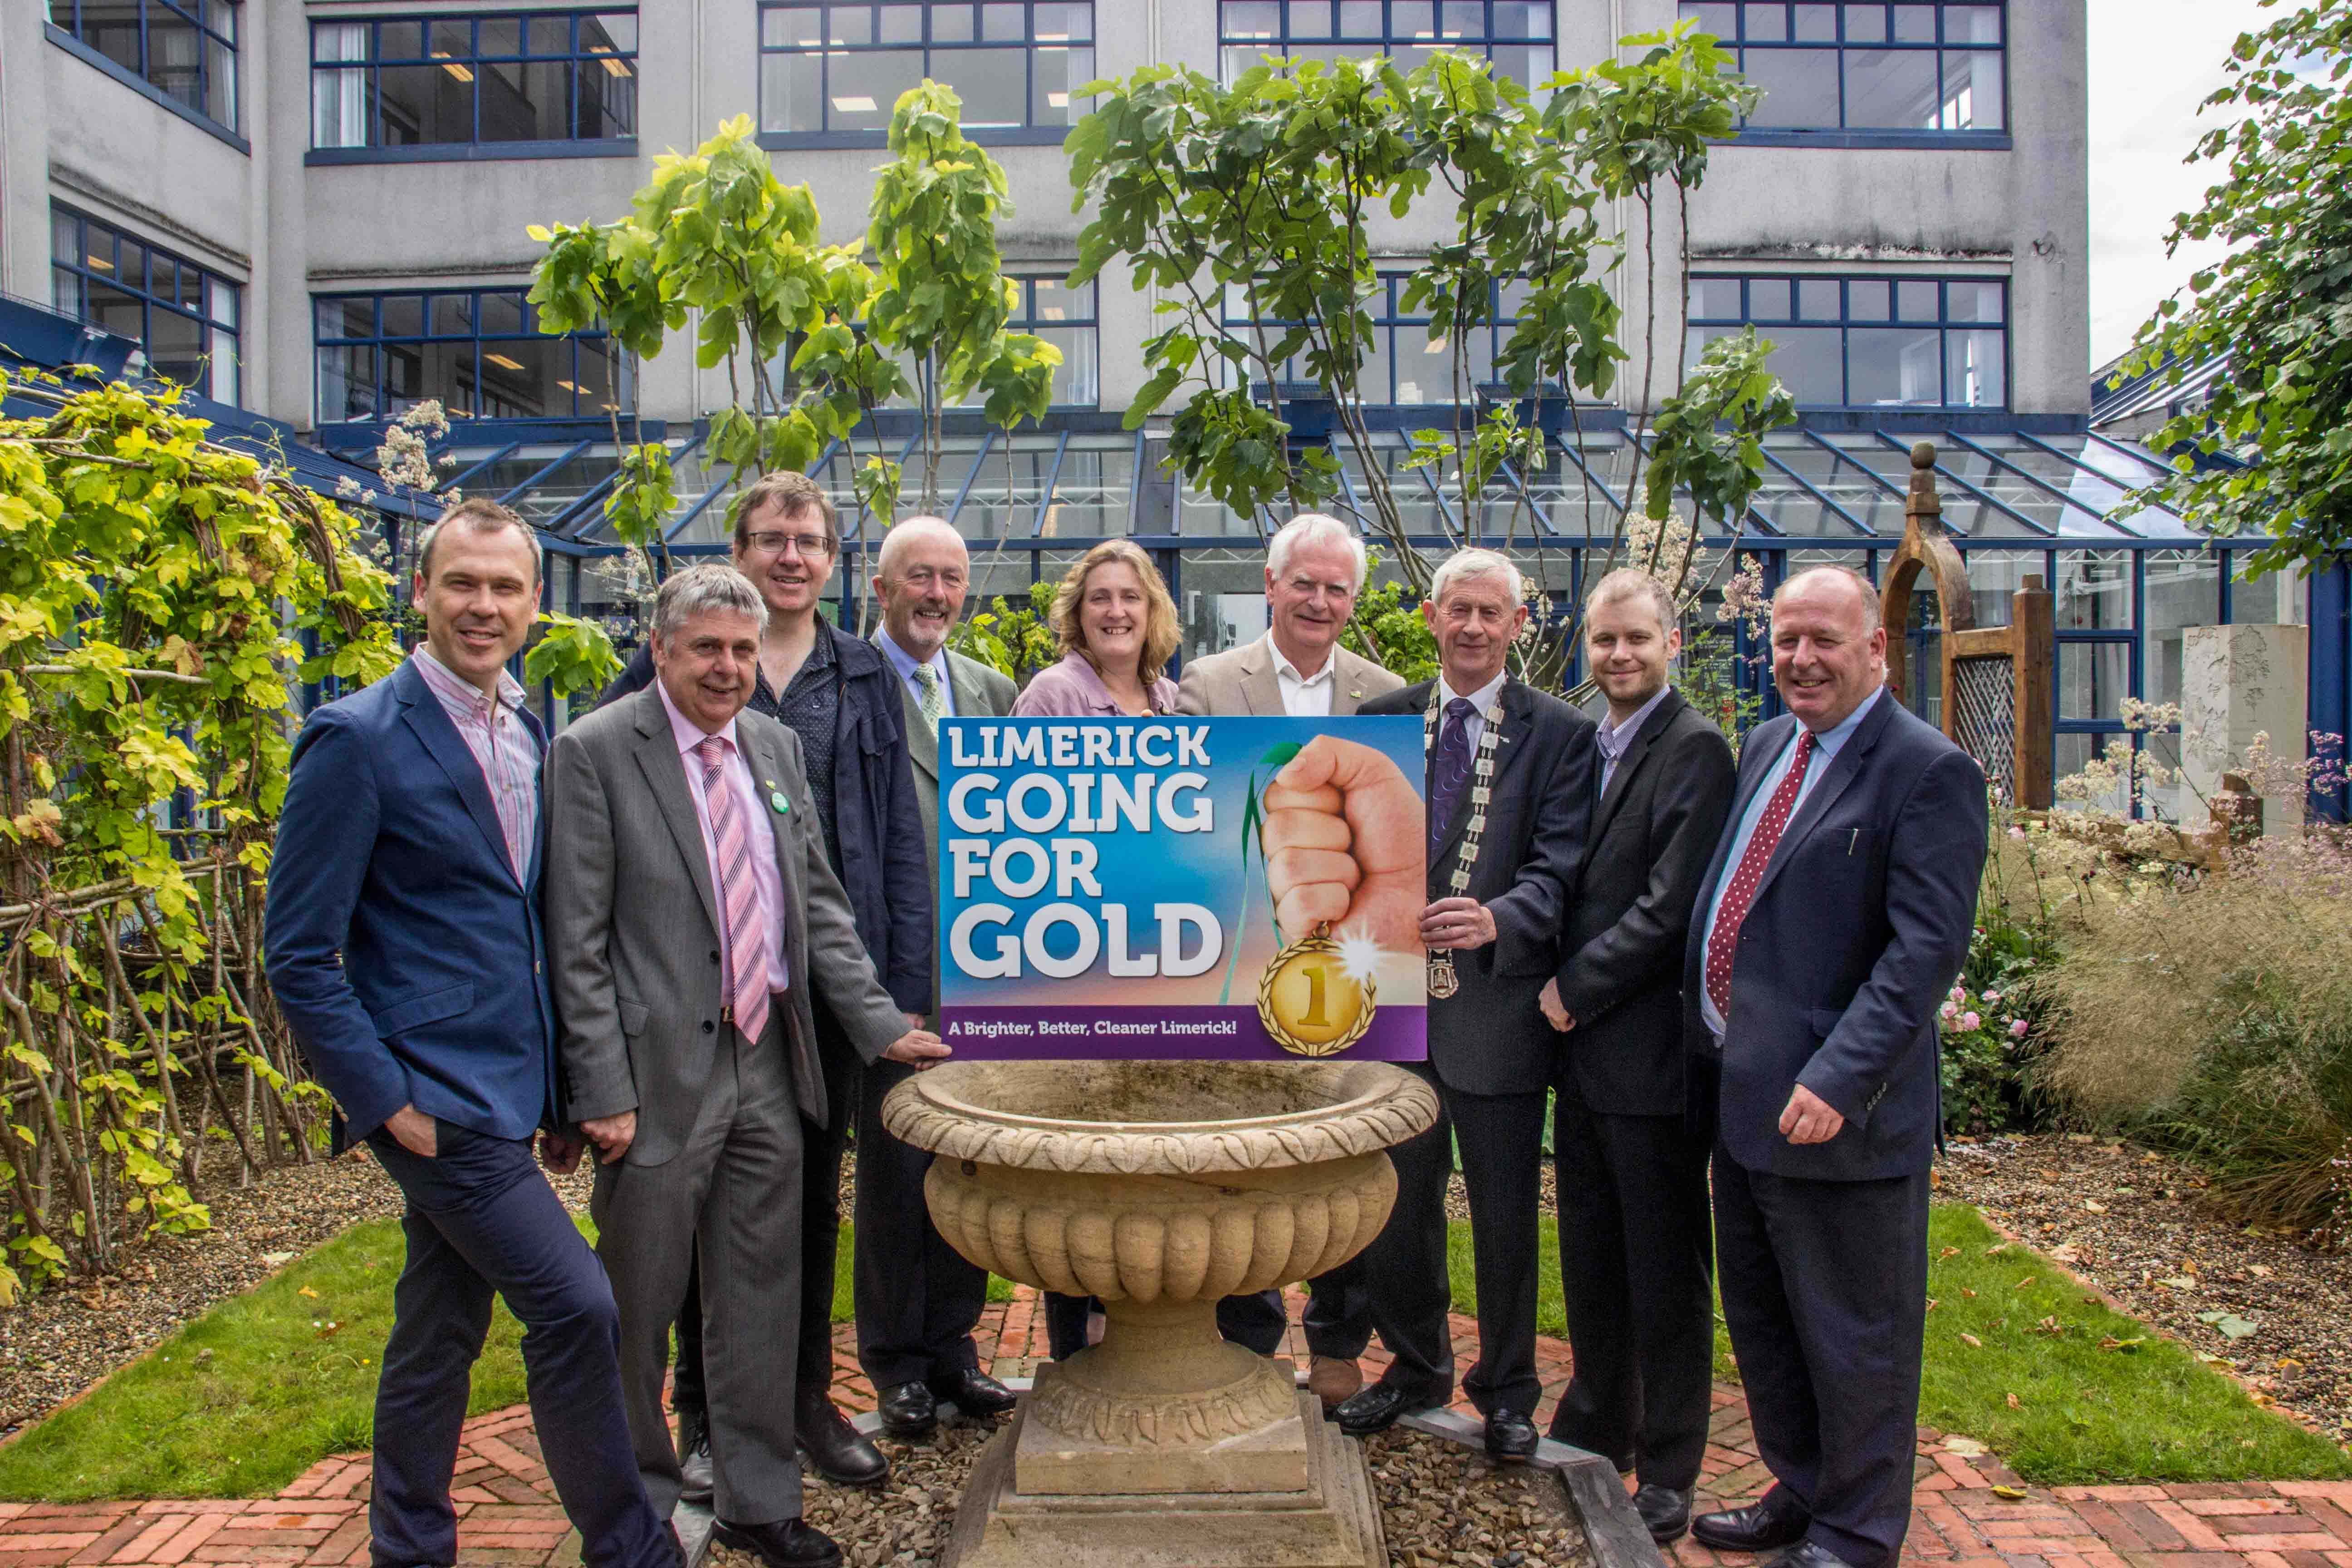 Limerick Going For Gold 2016 Campaign. picture by Cian Reinhardt